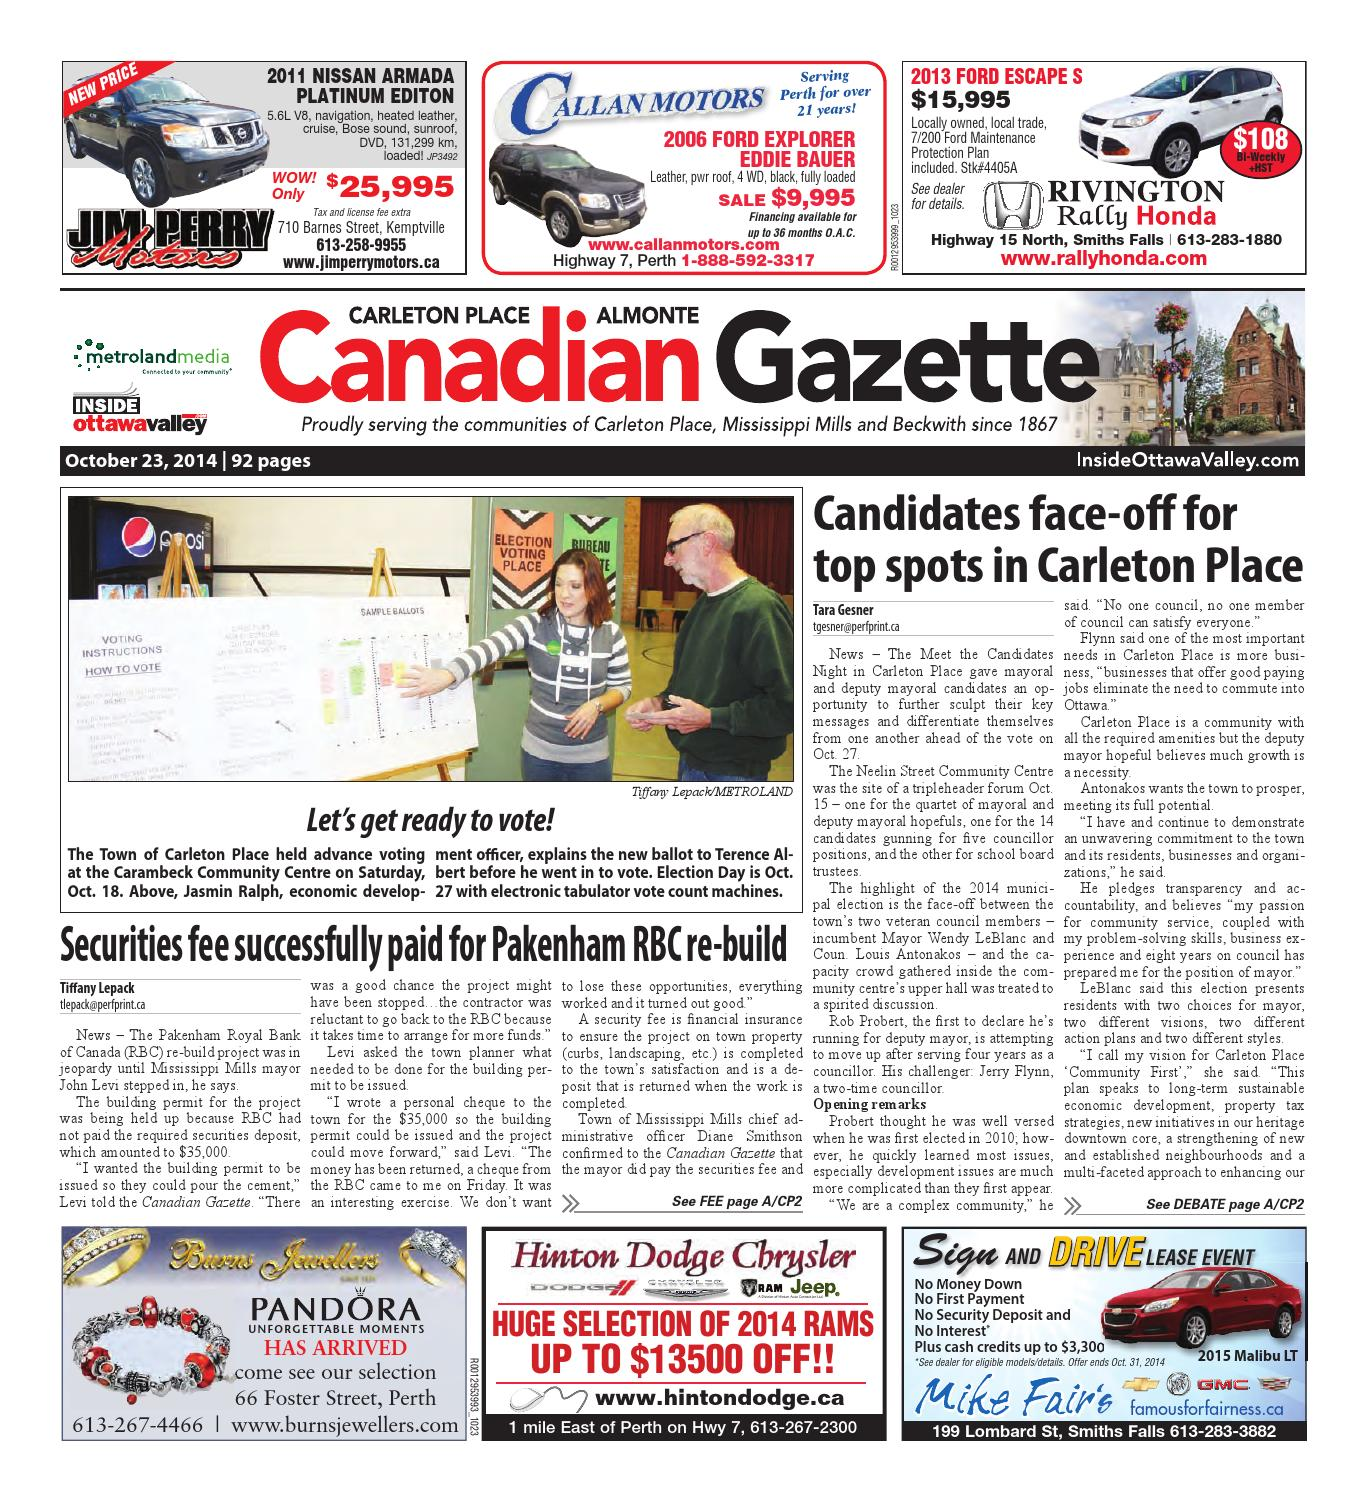 Almontecarletonplace102314 by metroland east almonte carleton almontecarletonplace102314 by metroland east almonte carleton place canadian gazette issuu fandeluxe Choice Image